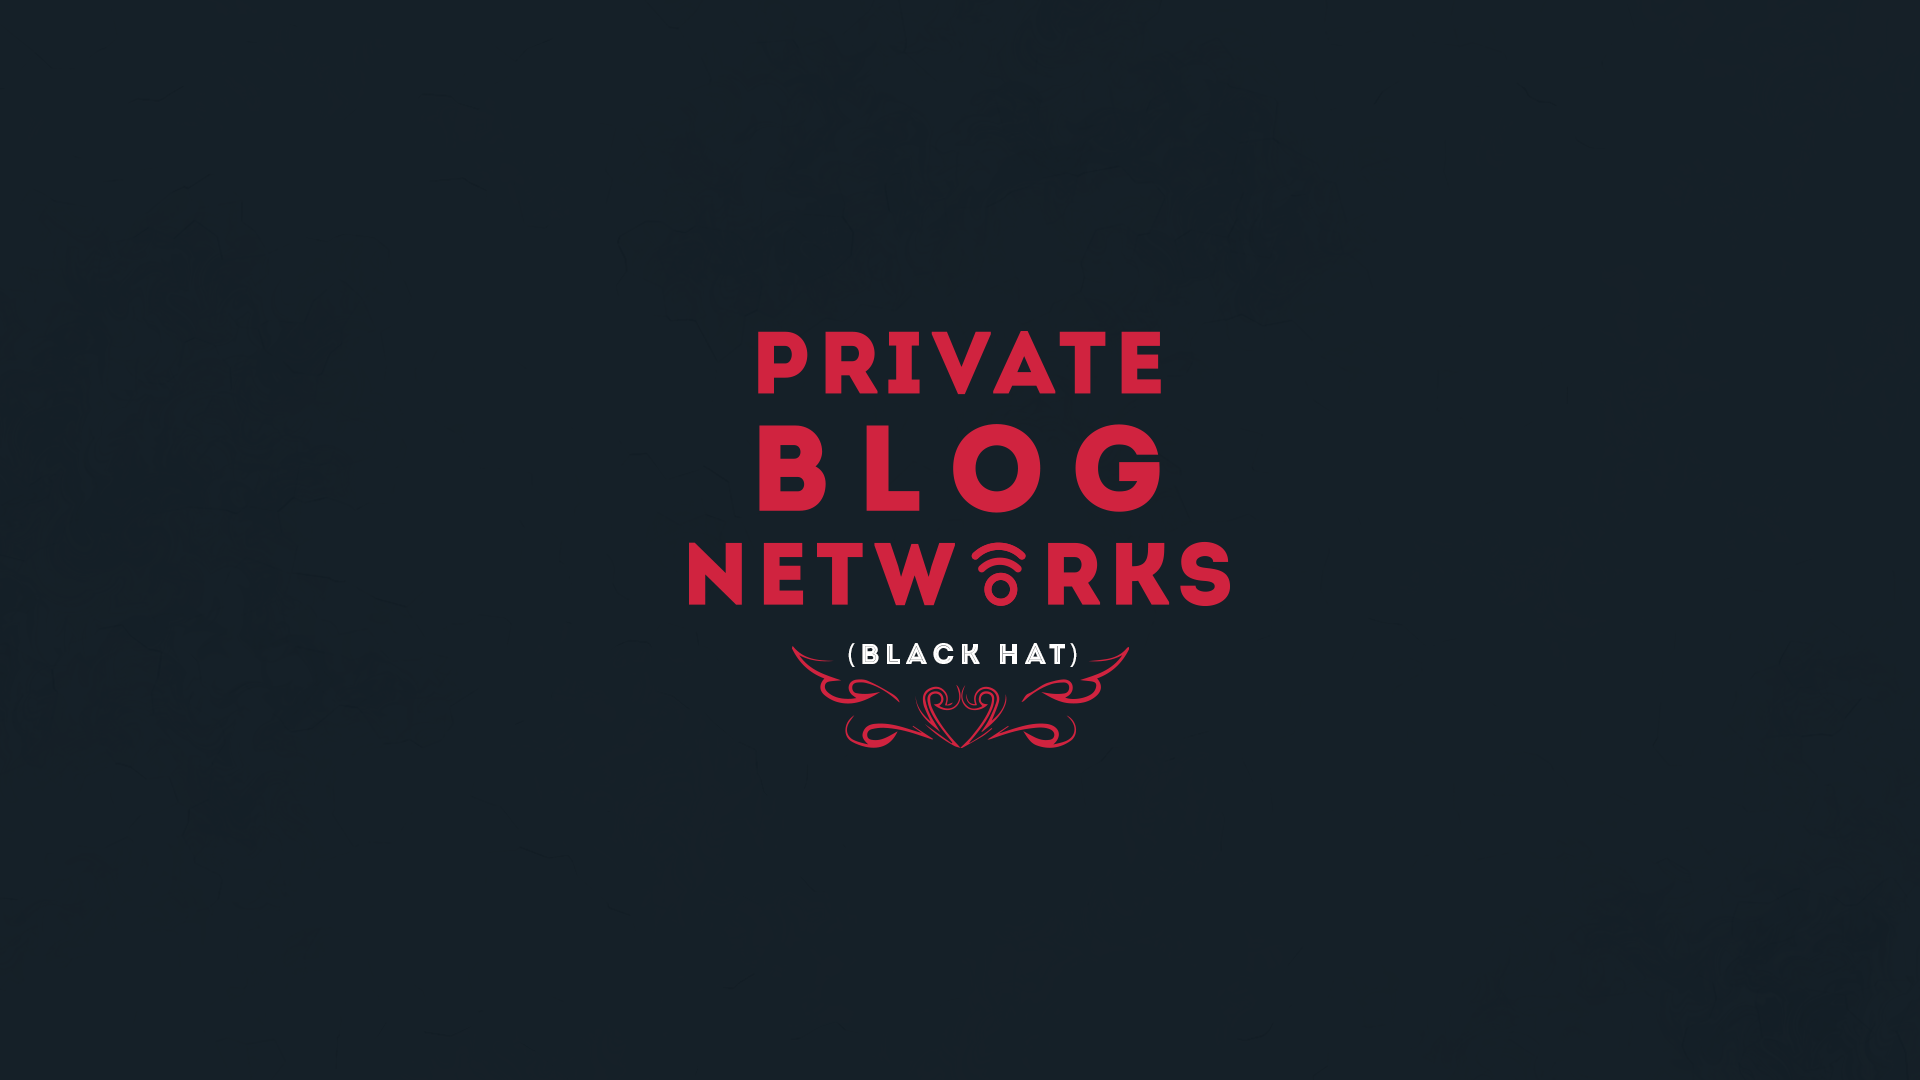 private blog networks